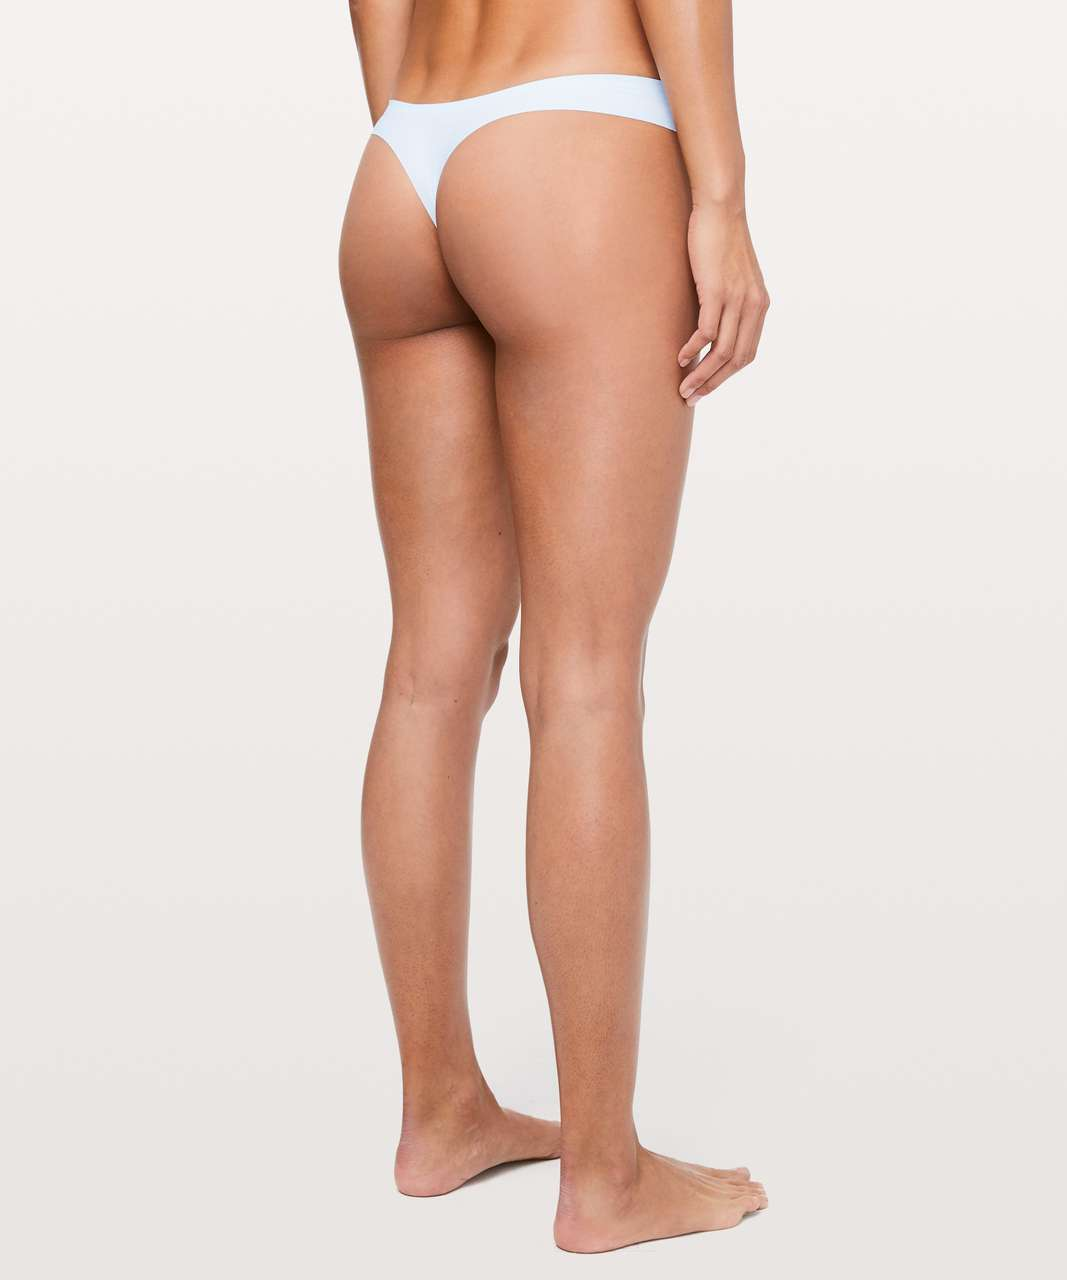 Lululemon Namastay Put Thong II - Sheer Blue